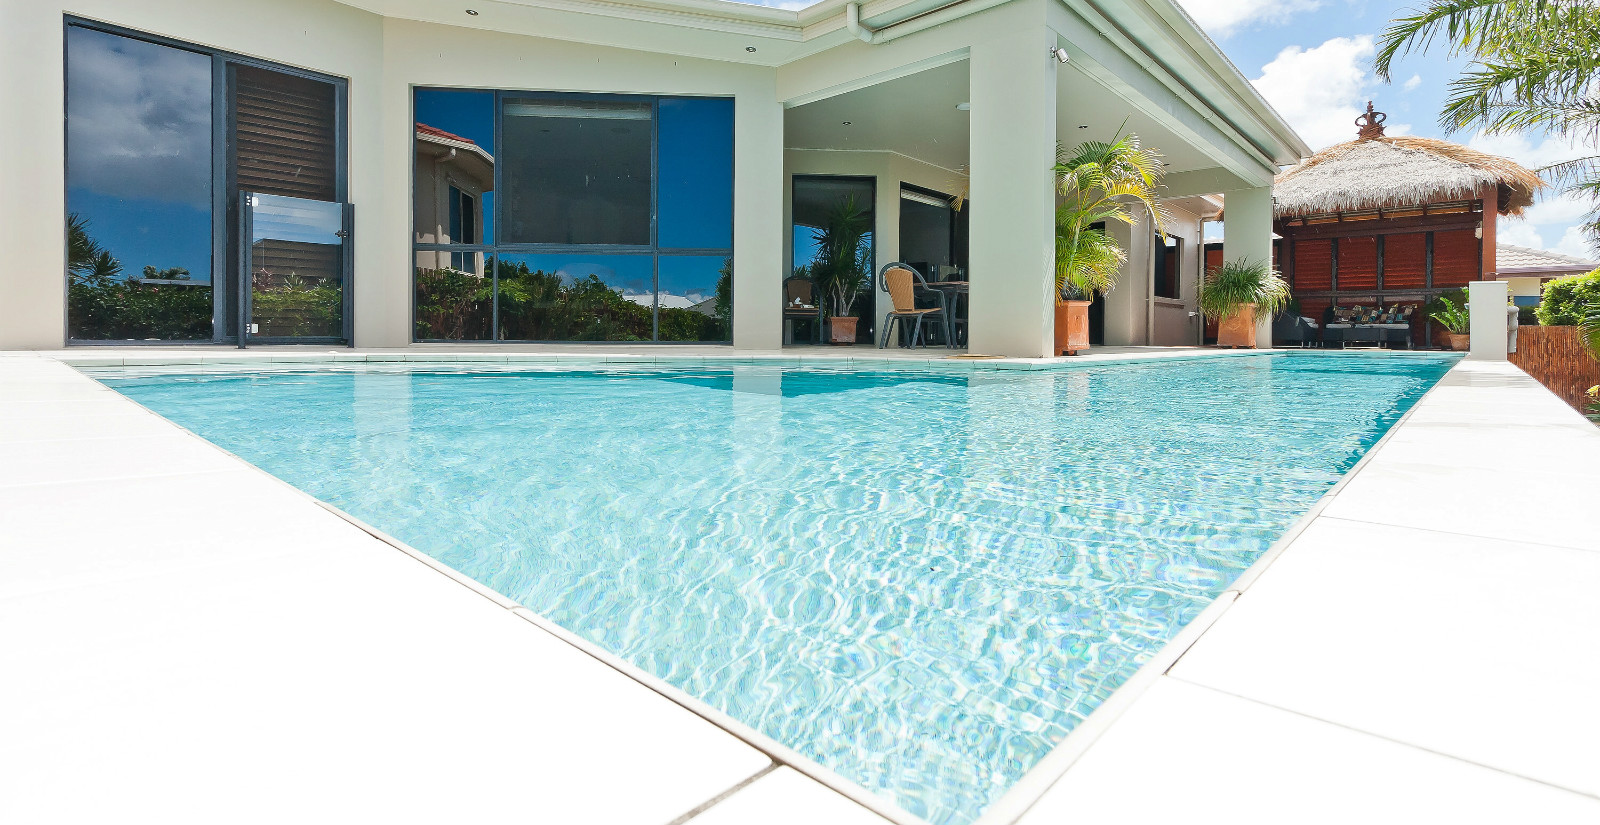 20 swimming pool builders hervey bay decor23 for Swimming pool builders